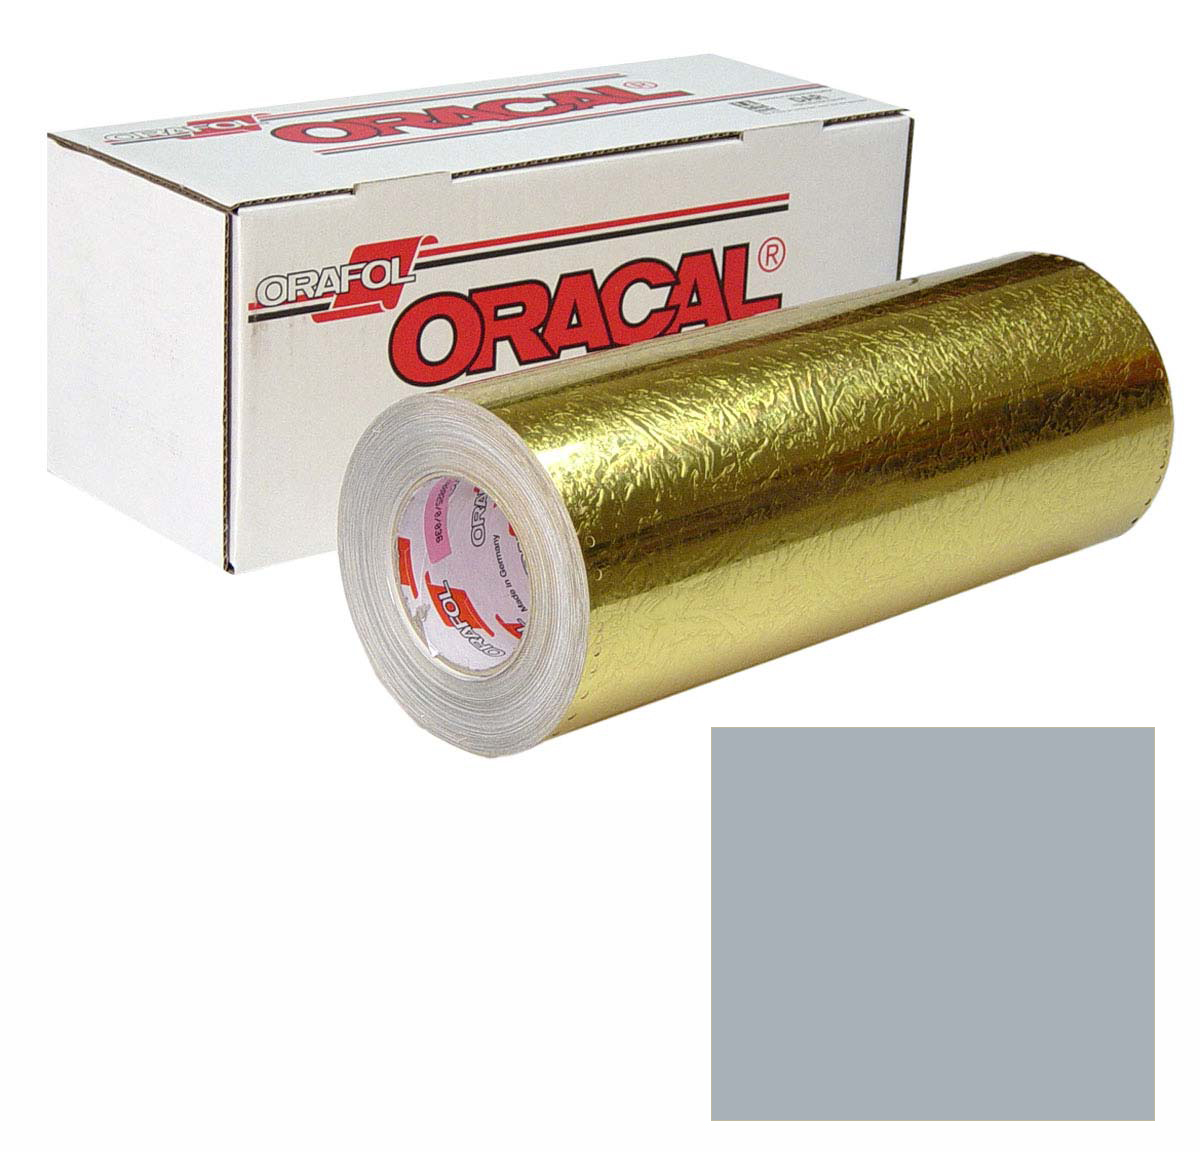 ORACAL 383 Ultraleaf 24In X 50Yd 001-Chrome